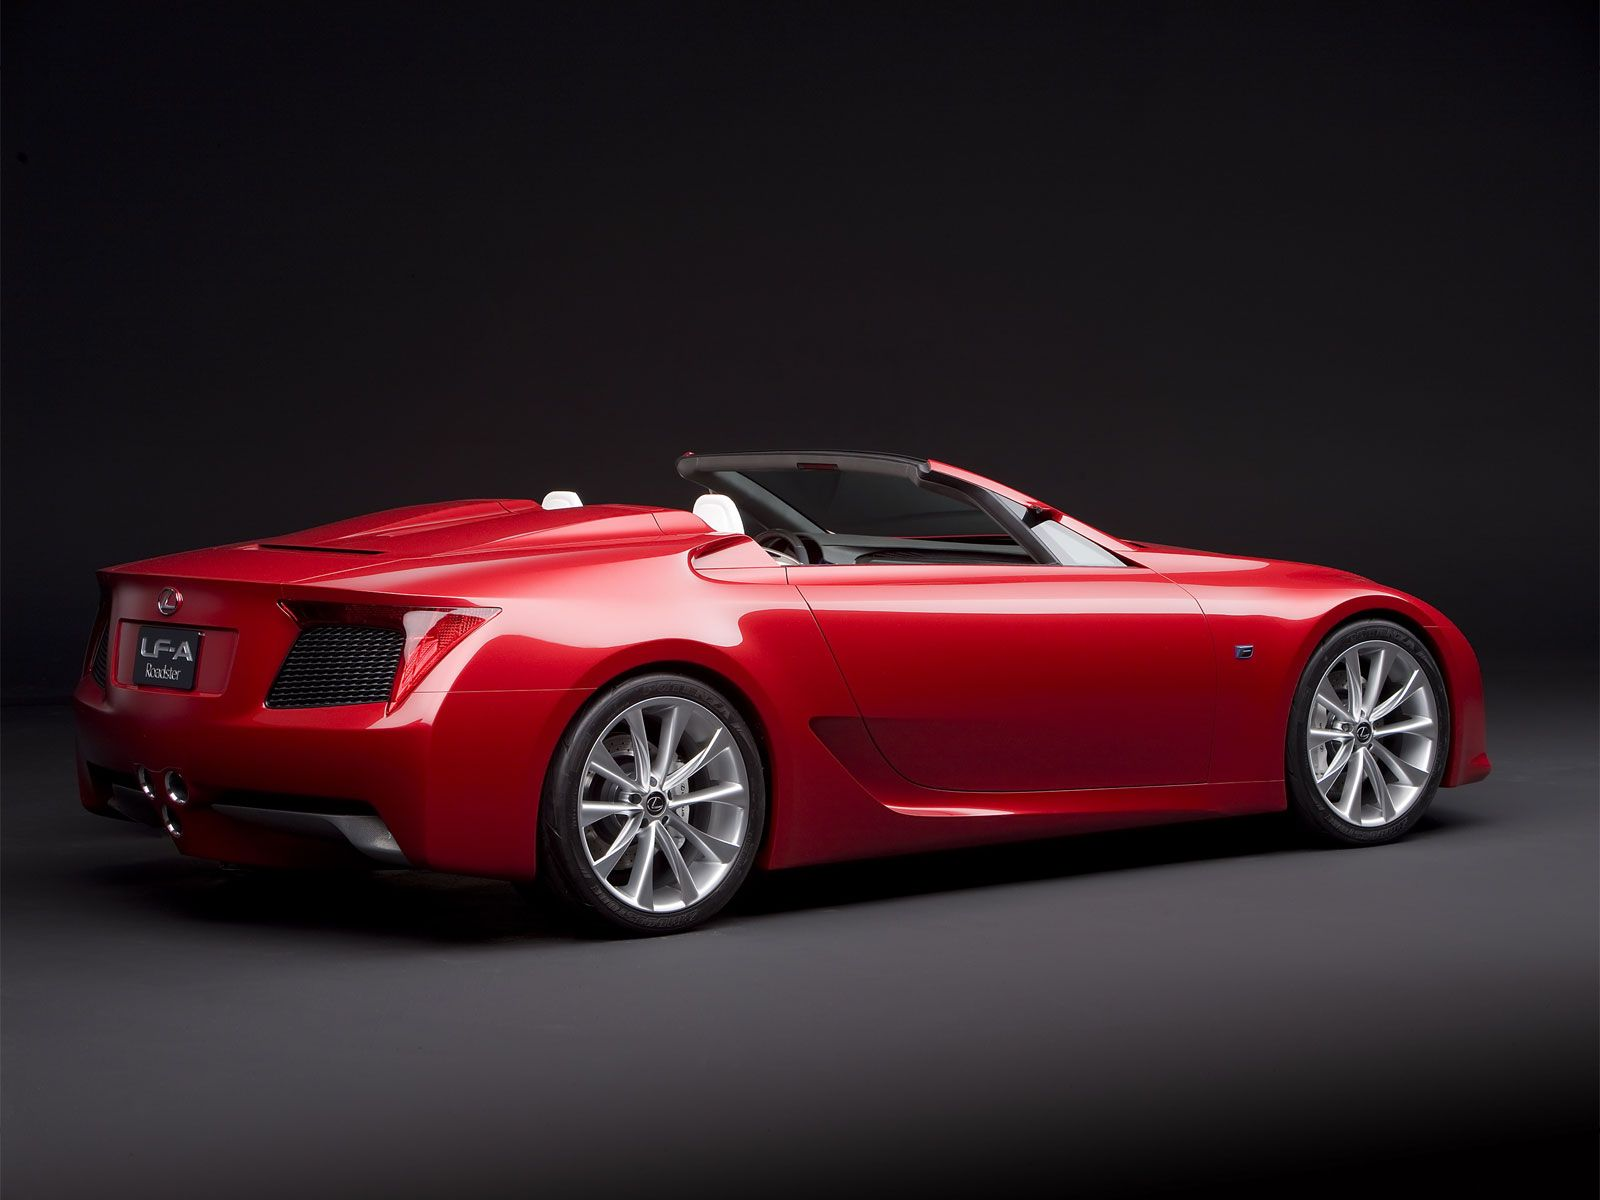 2008 Lexus LFA Roadster Concept My Wifes Dream Car